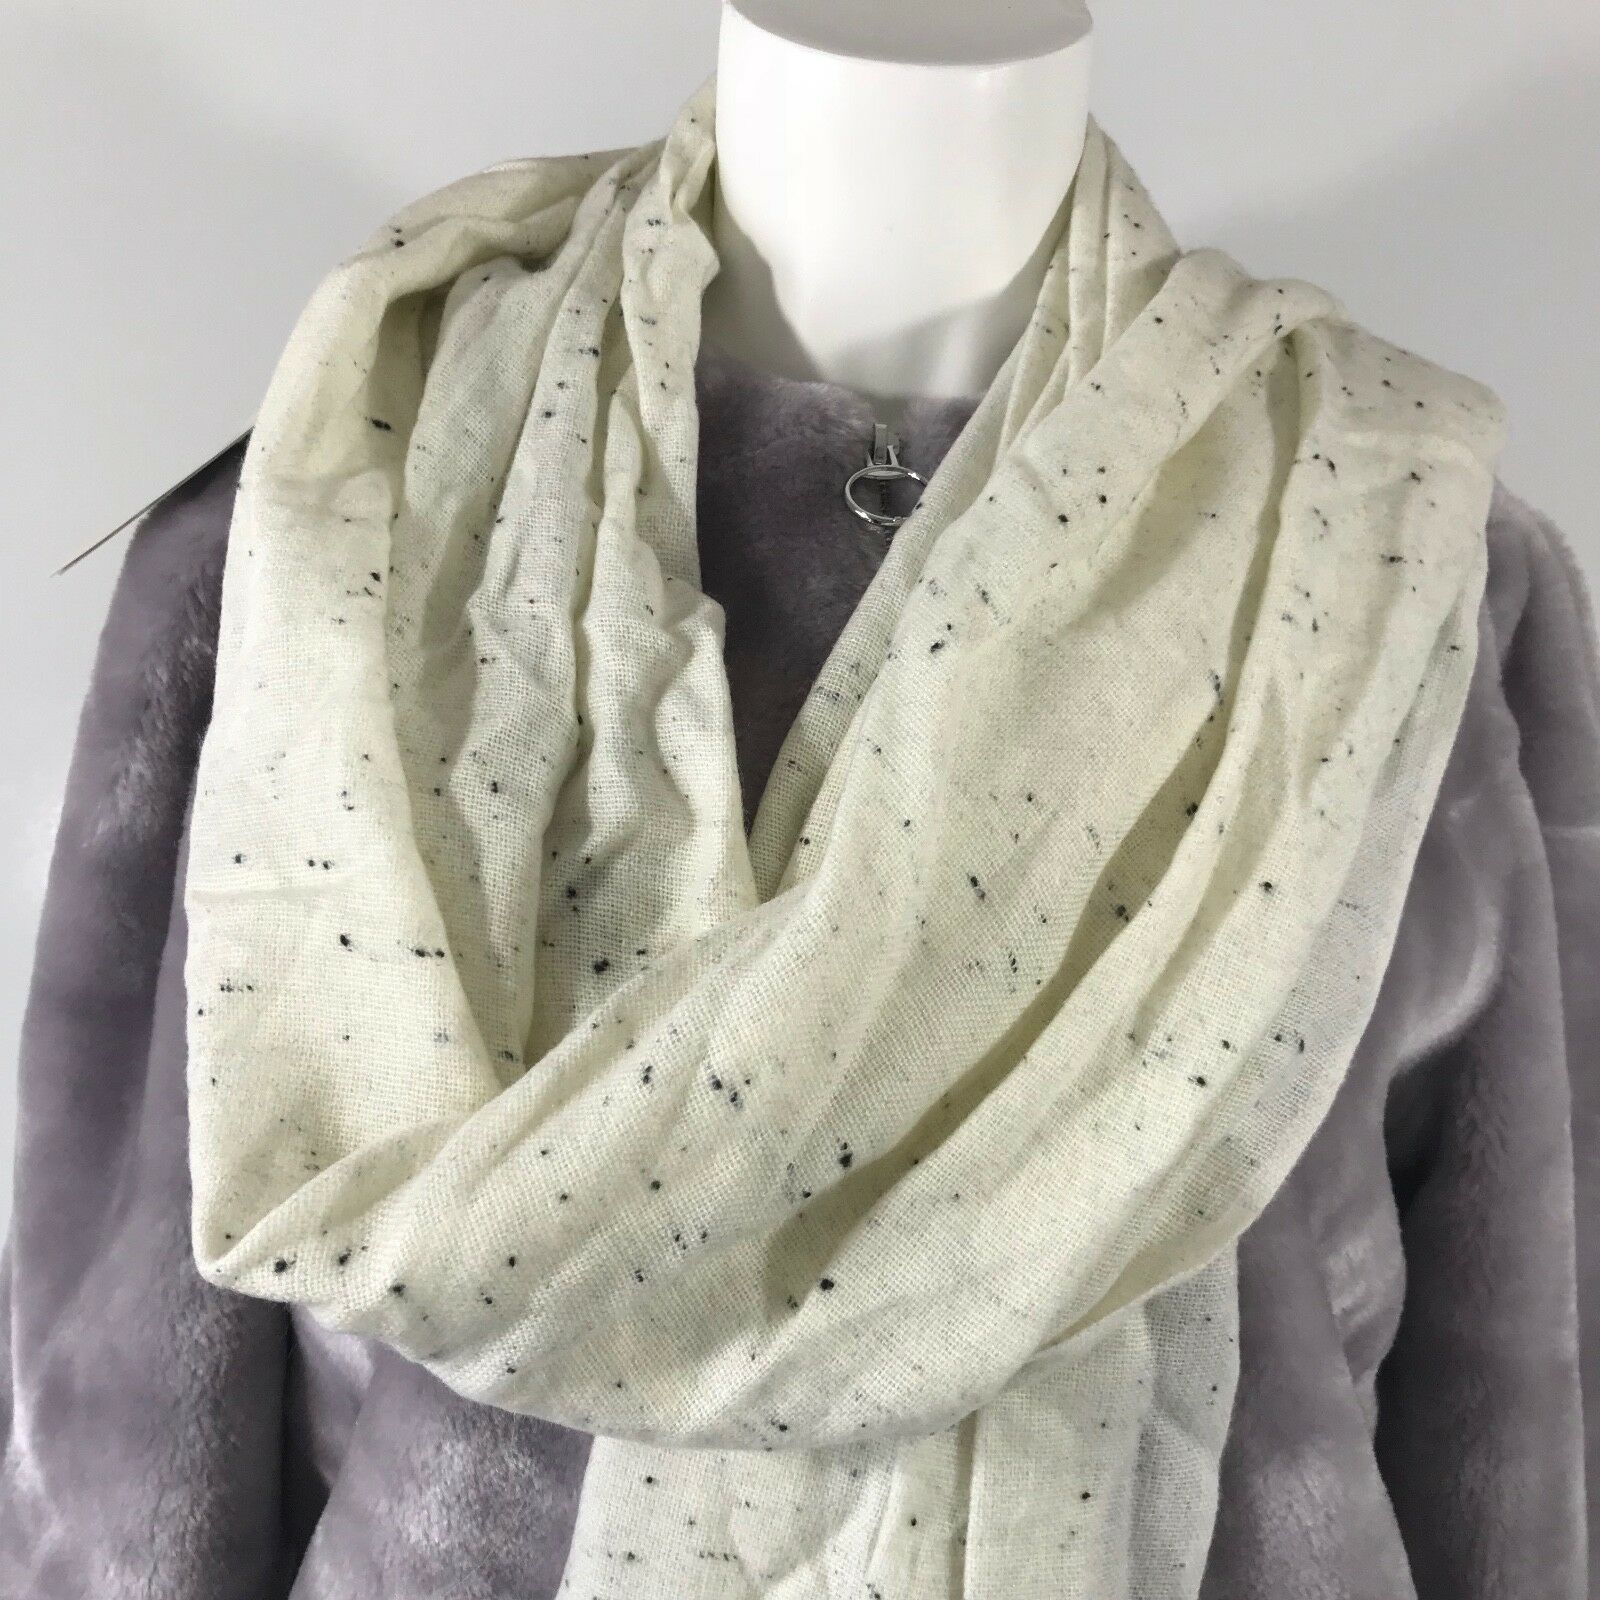 A New Day Long Rectangular Scarf Drape Ivory and Gray with Fringes on the Ends